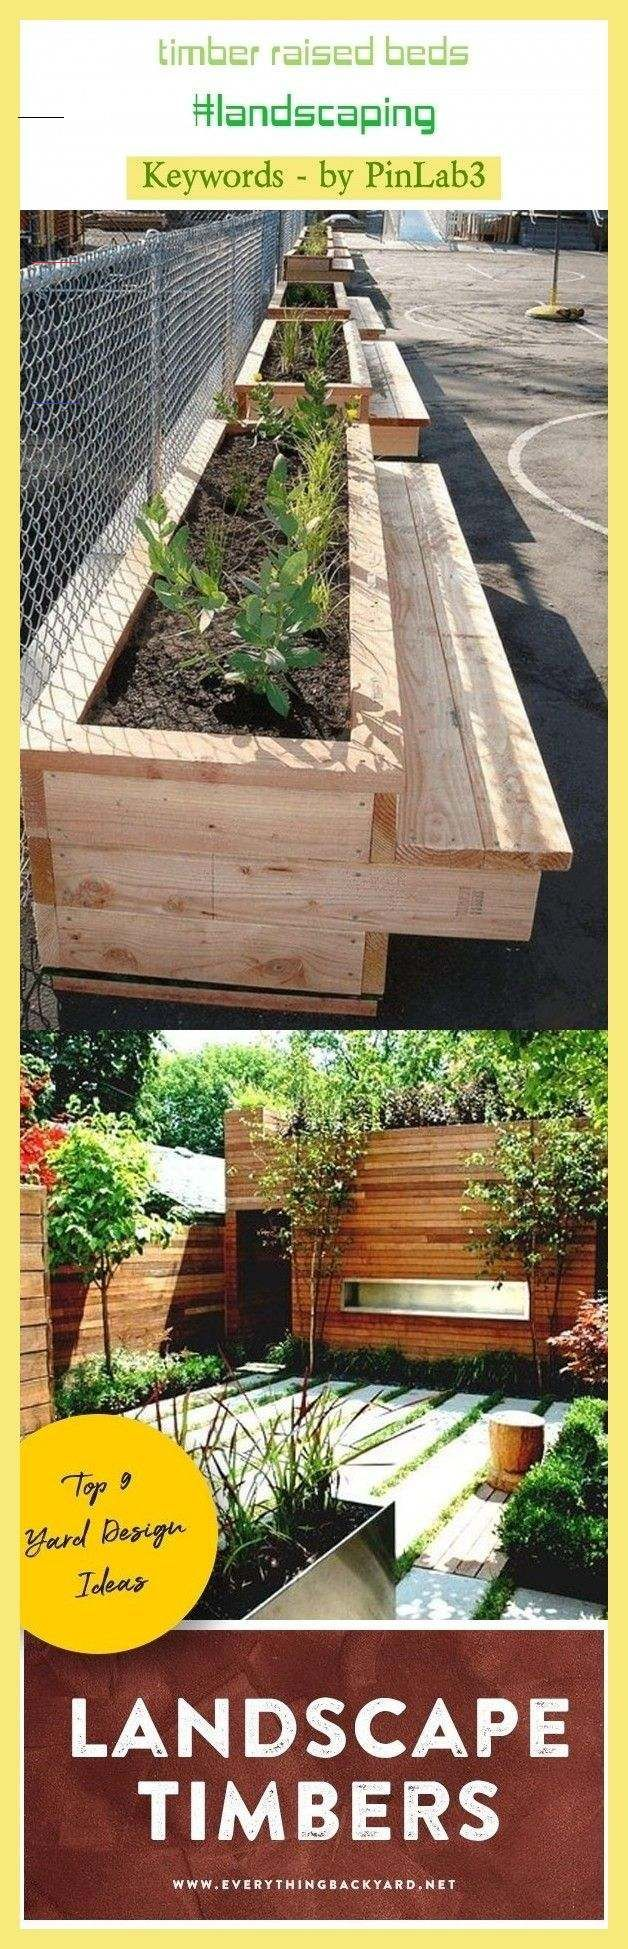 Timber Raised Beds Landscaping Gardens Raised Beds Bedroom